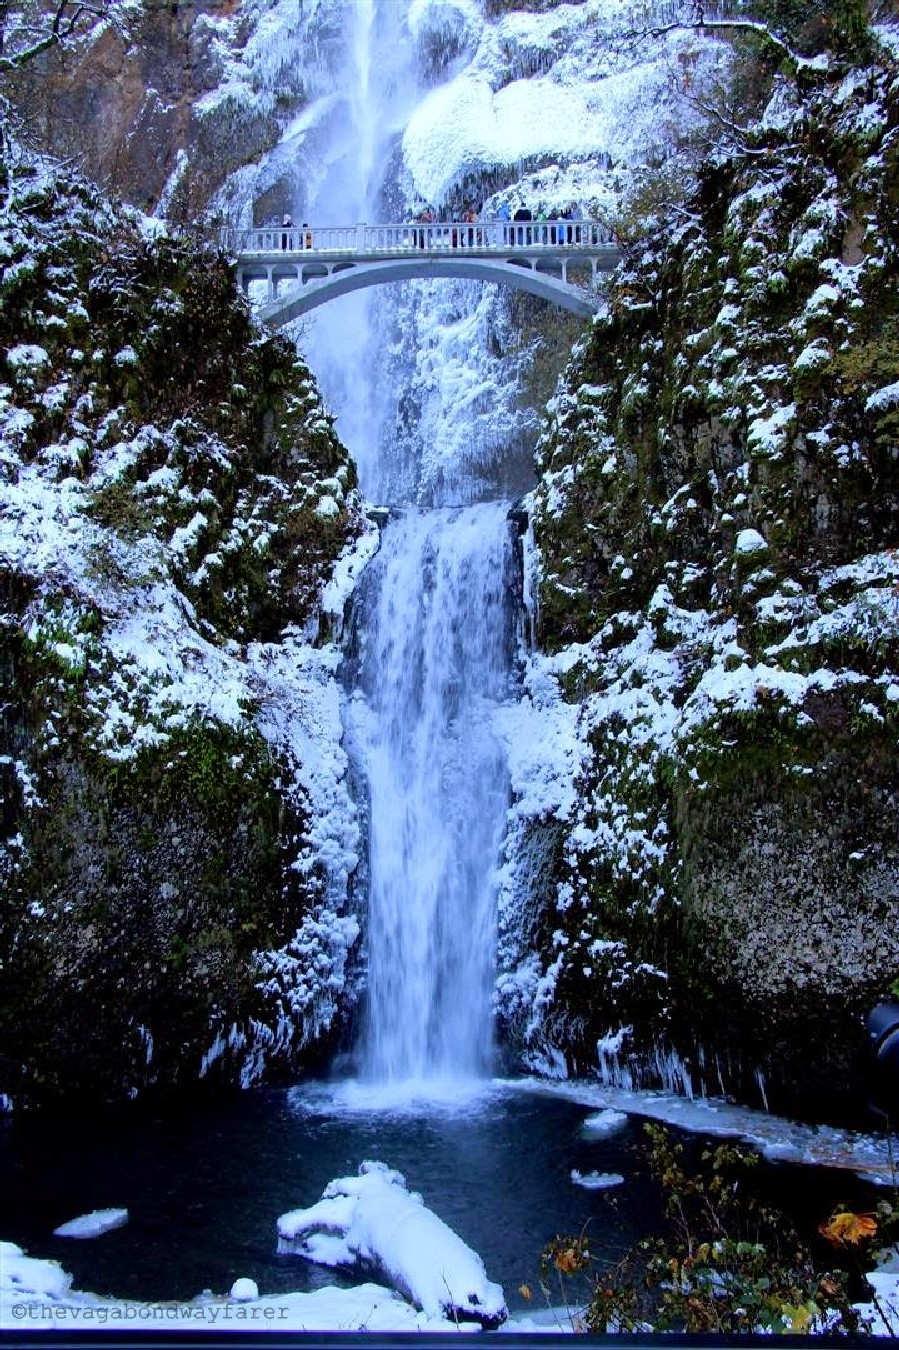 Multnomah Falls - Columbia River Gorge National Scenic Area,. The Vagabond Wayfarer